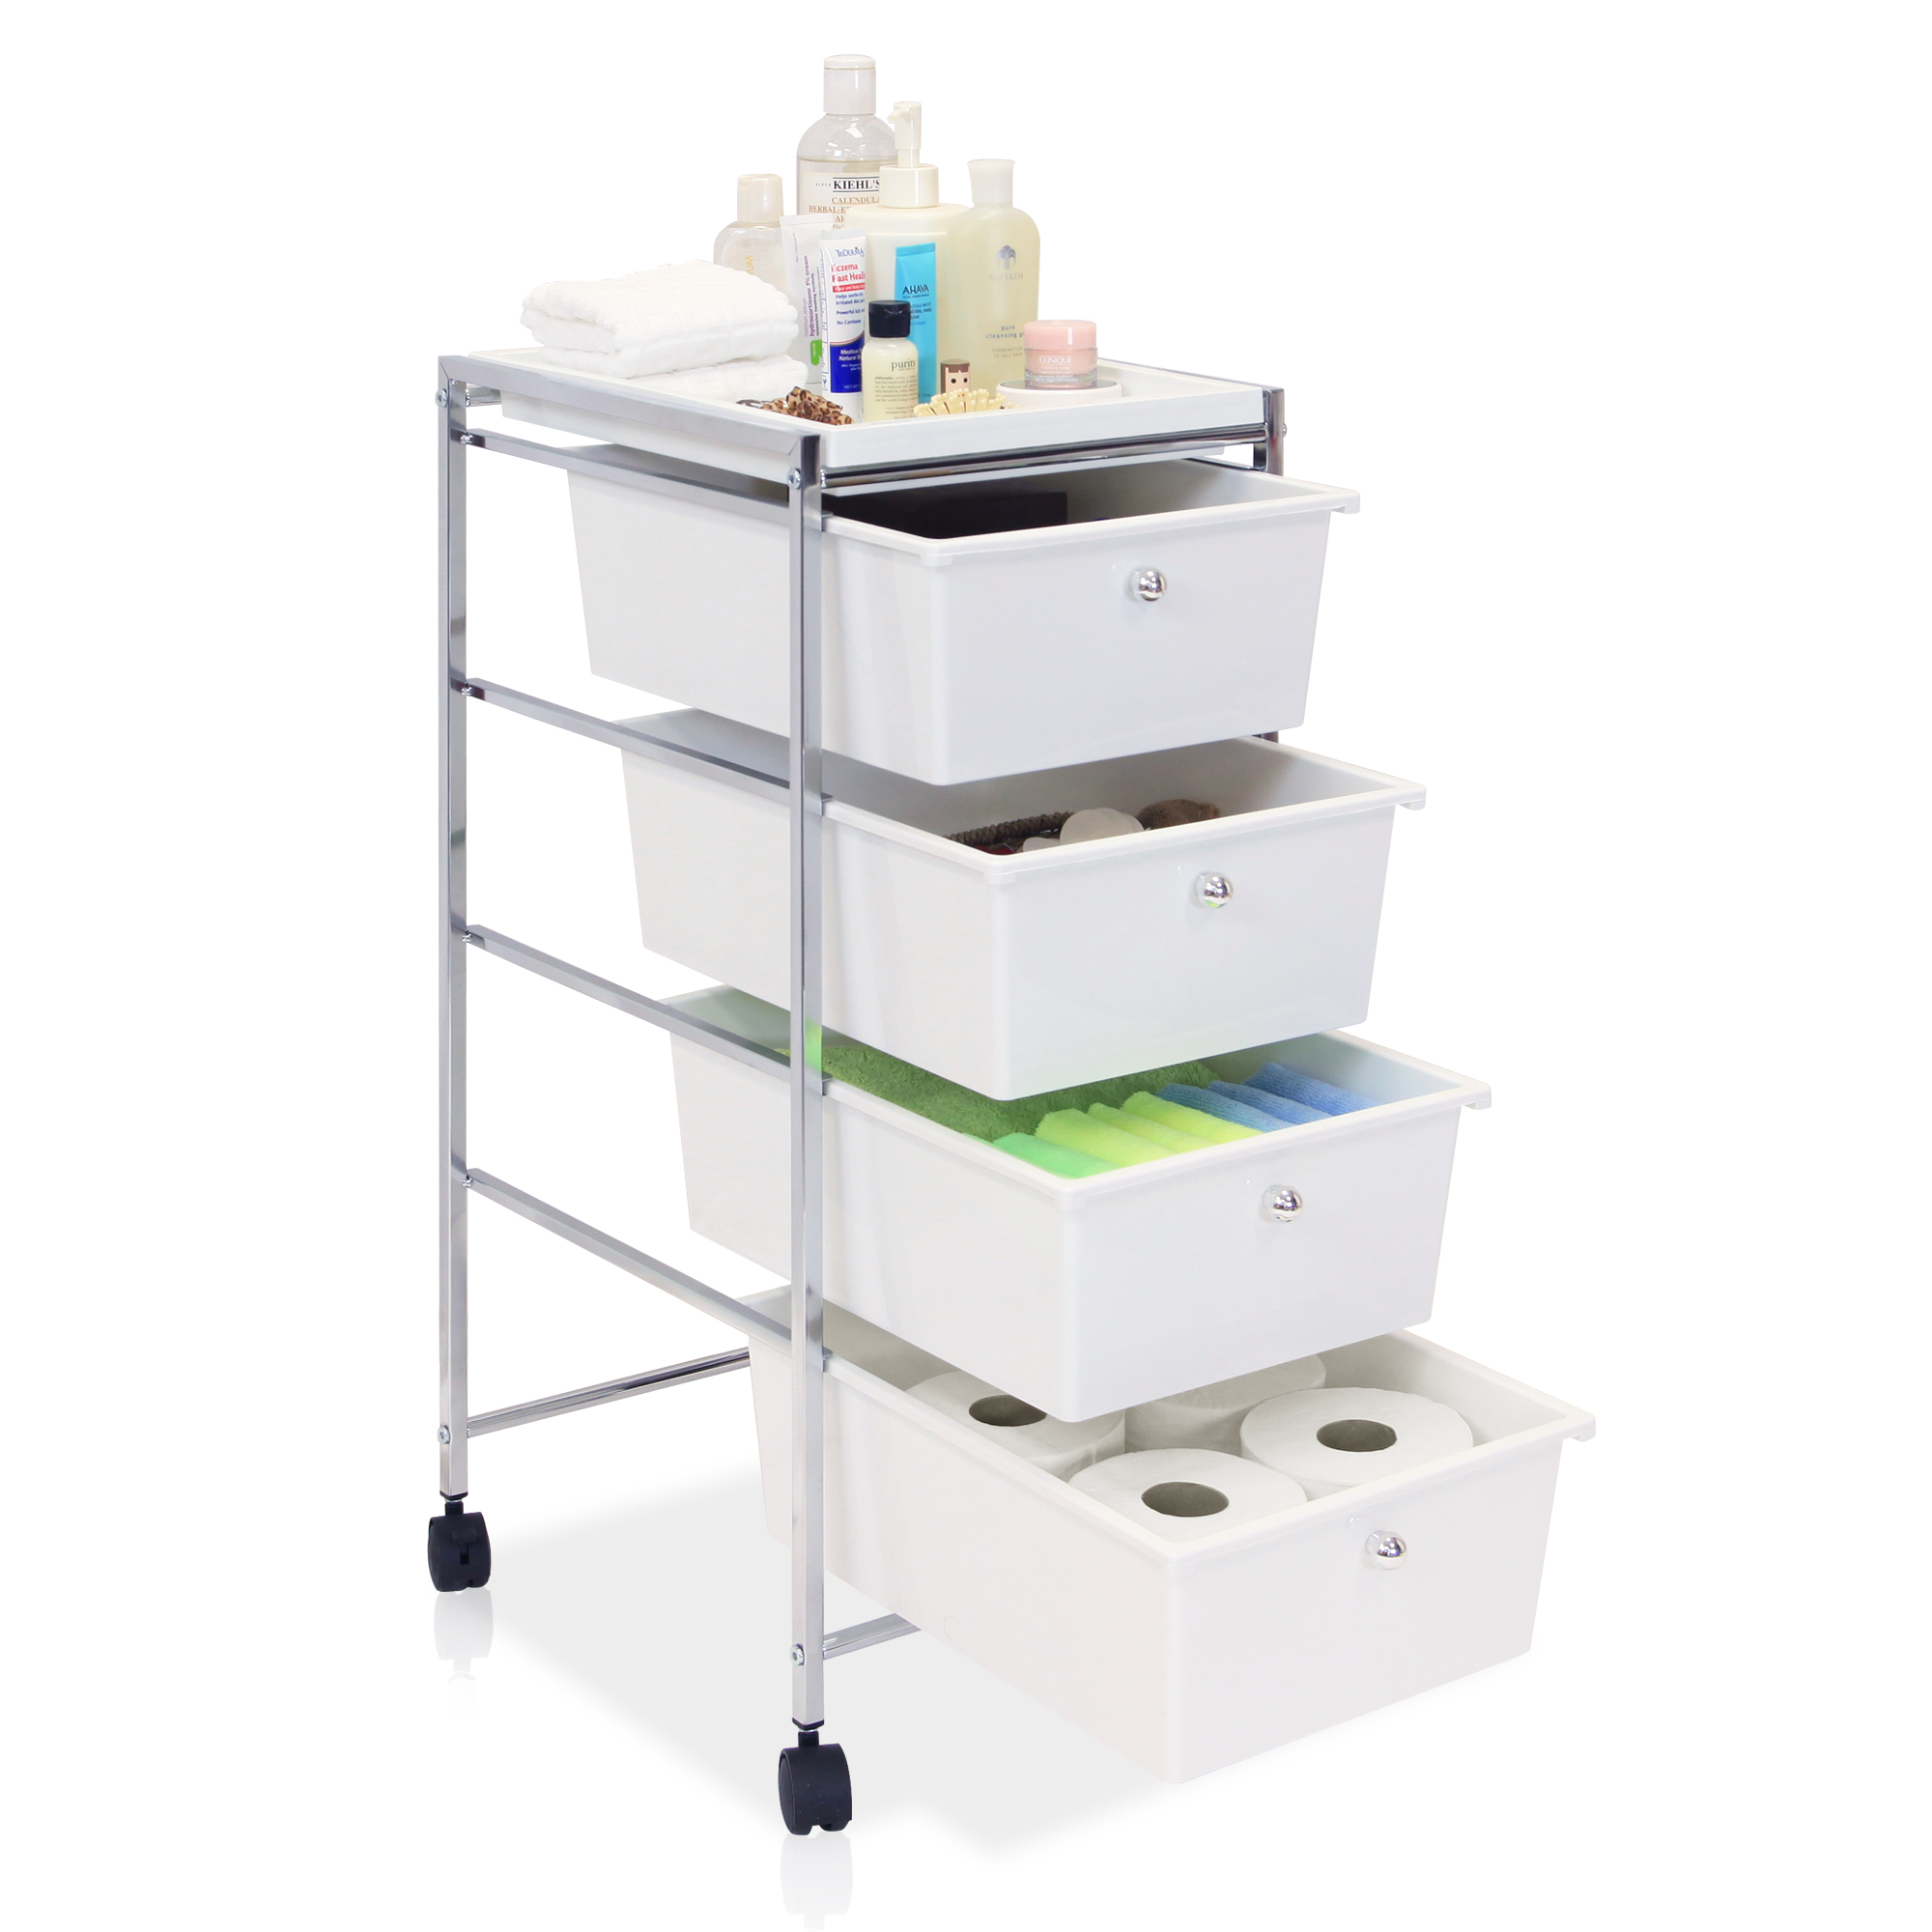 dp kitchen amazon com cart bin large white classics drawers frosted seville organizer home drawer storage